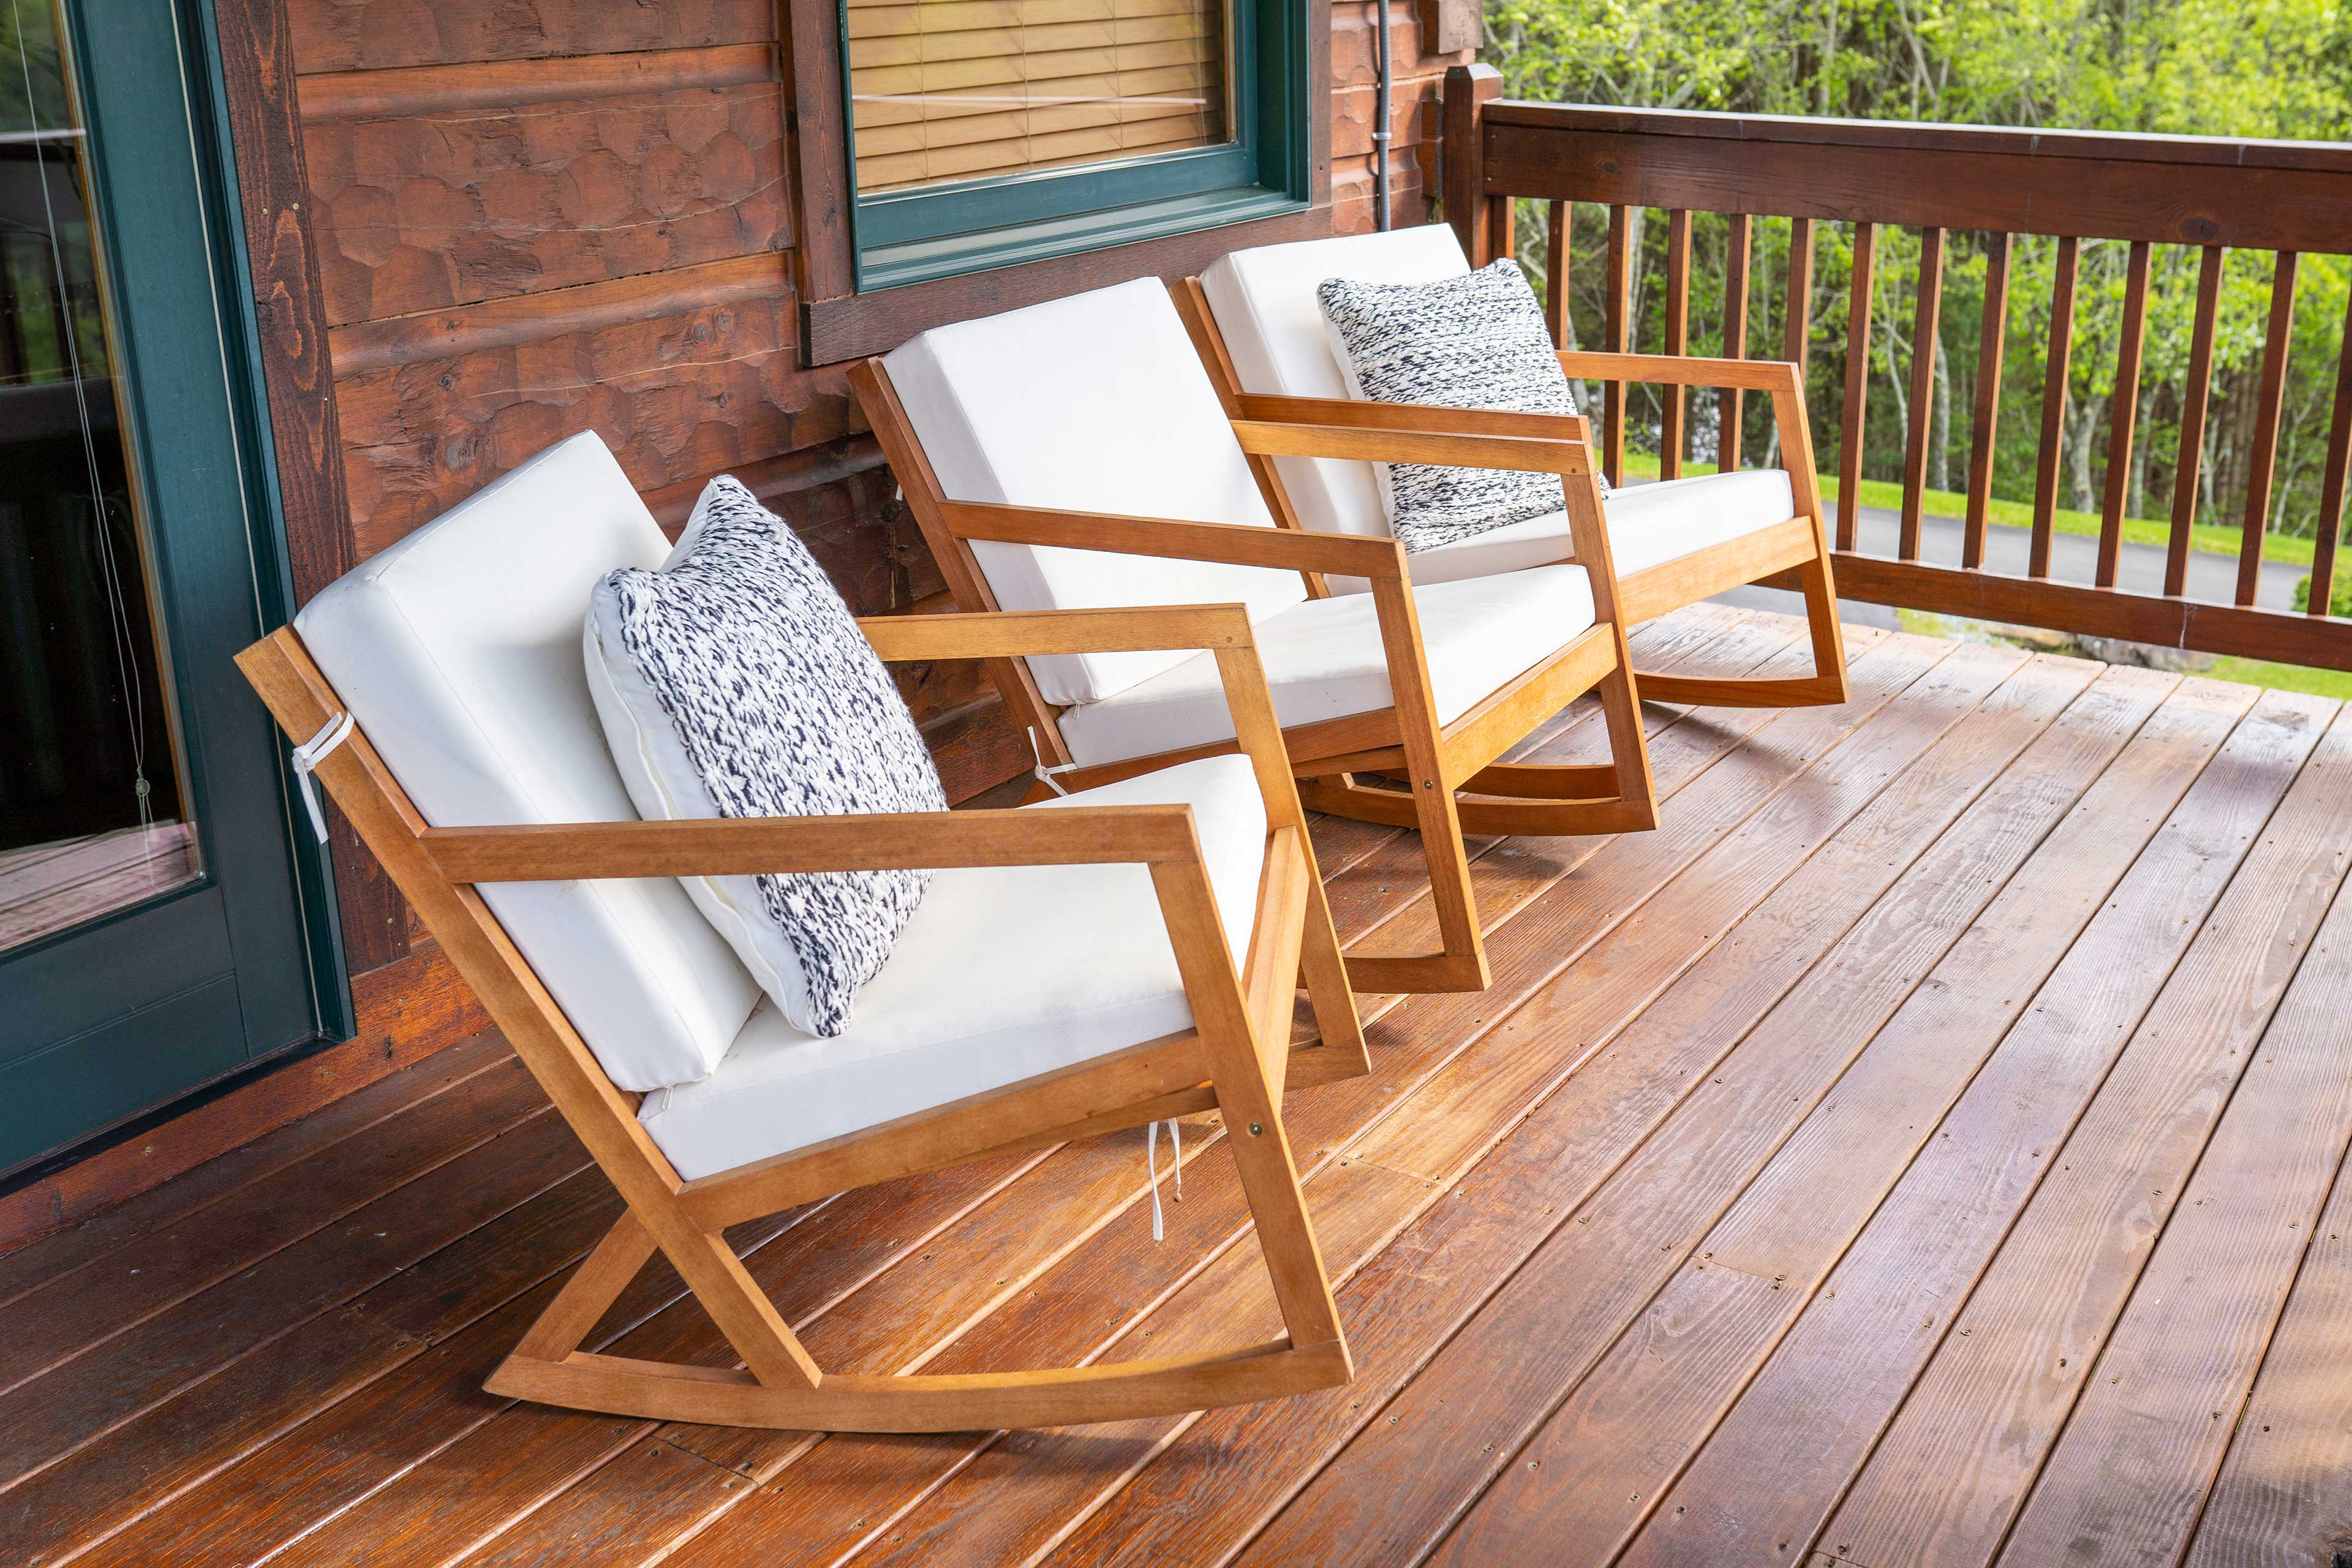 Relaxation is made easy with this spacious entertainment deck.